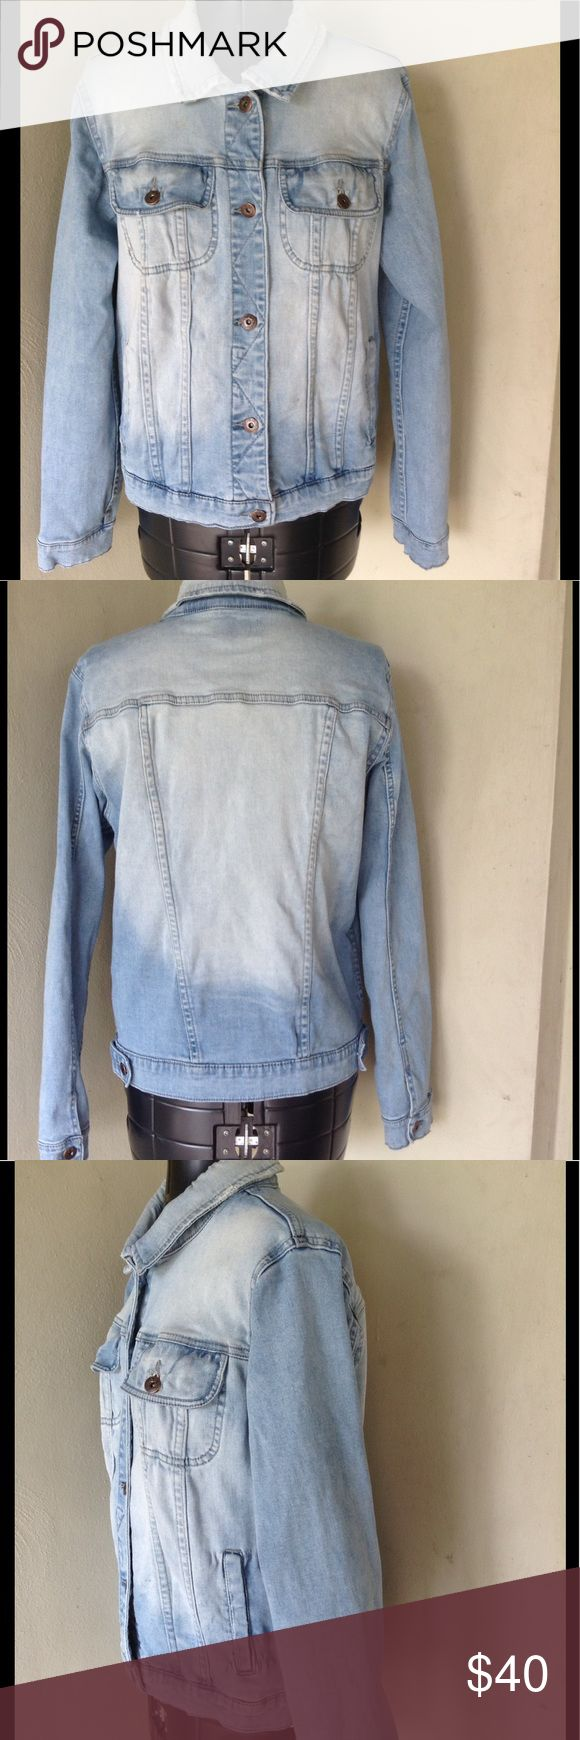 "ABS by Allen Schwartz denim jacket size L ABS denim jacket by Allen Schwartz. Light blue,slightly distressed,very soft to the touch. Pit to pit is 19"" and length is 22"".   Size Large. ABS Allen Schwartz Jackets & Coats Jean Jackets"